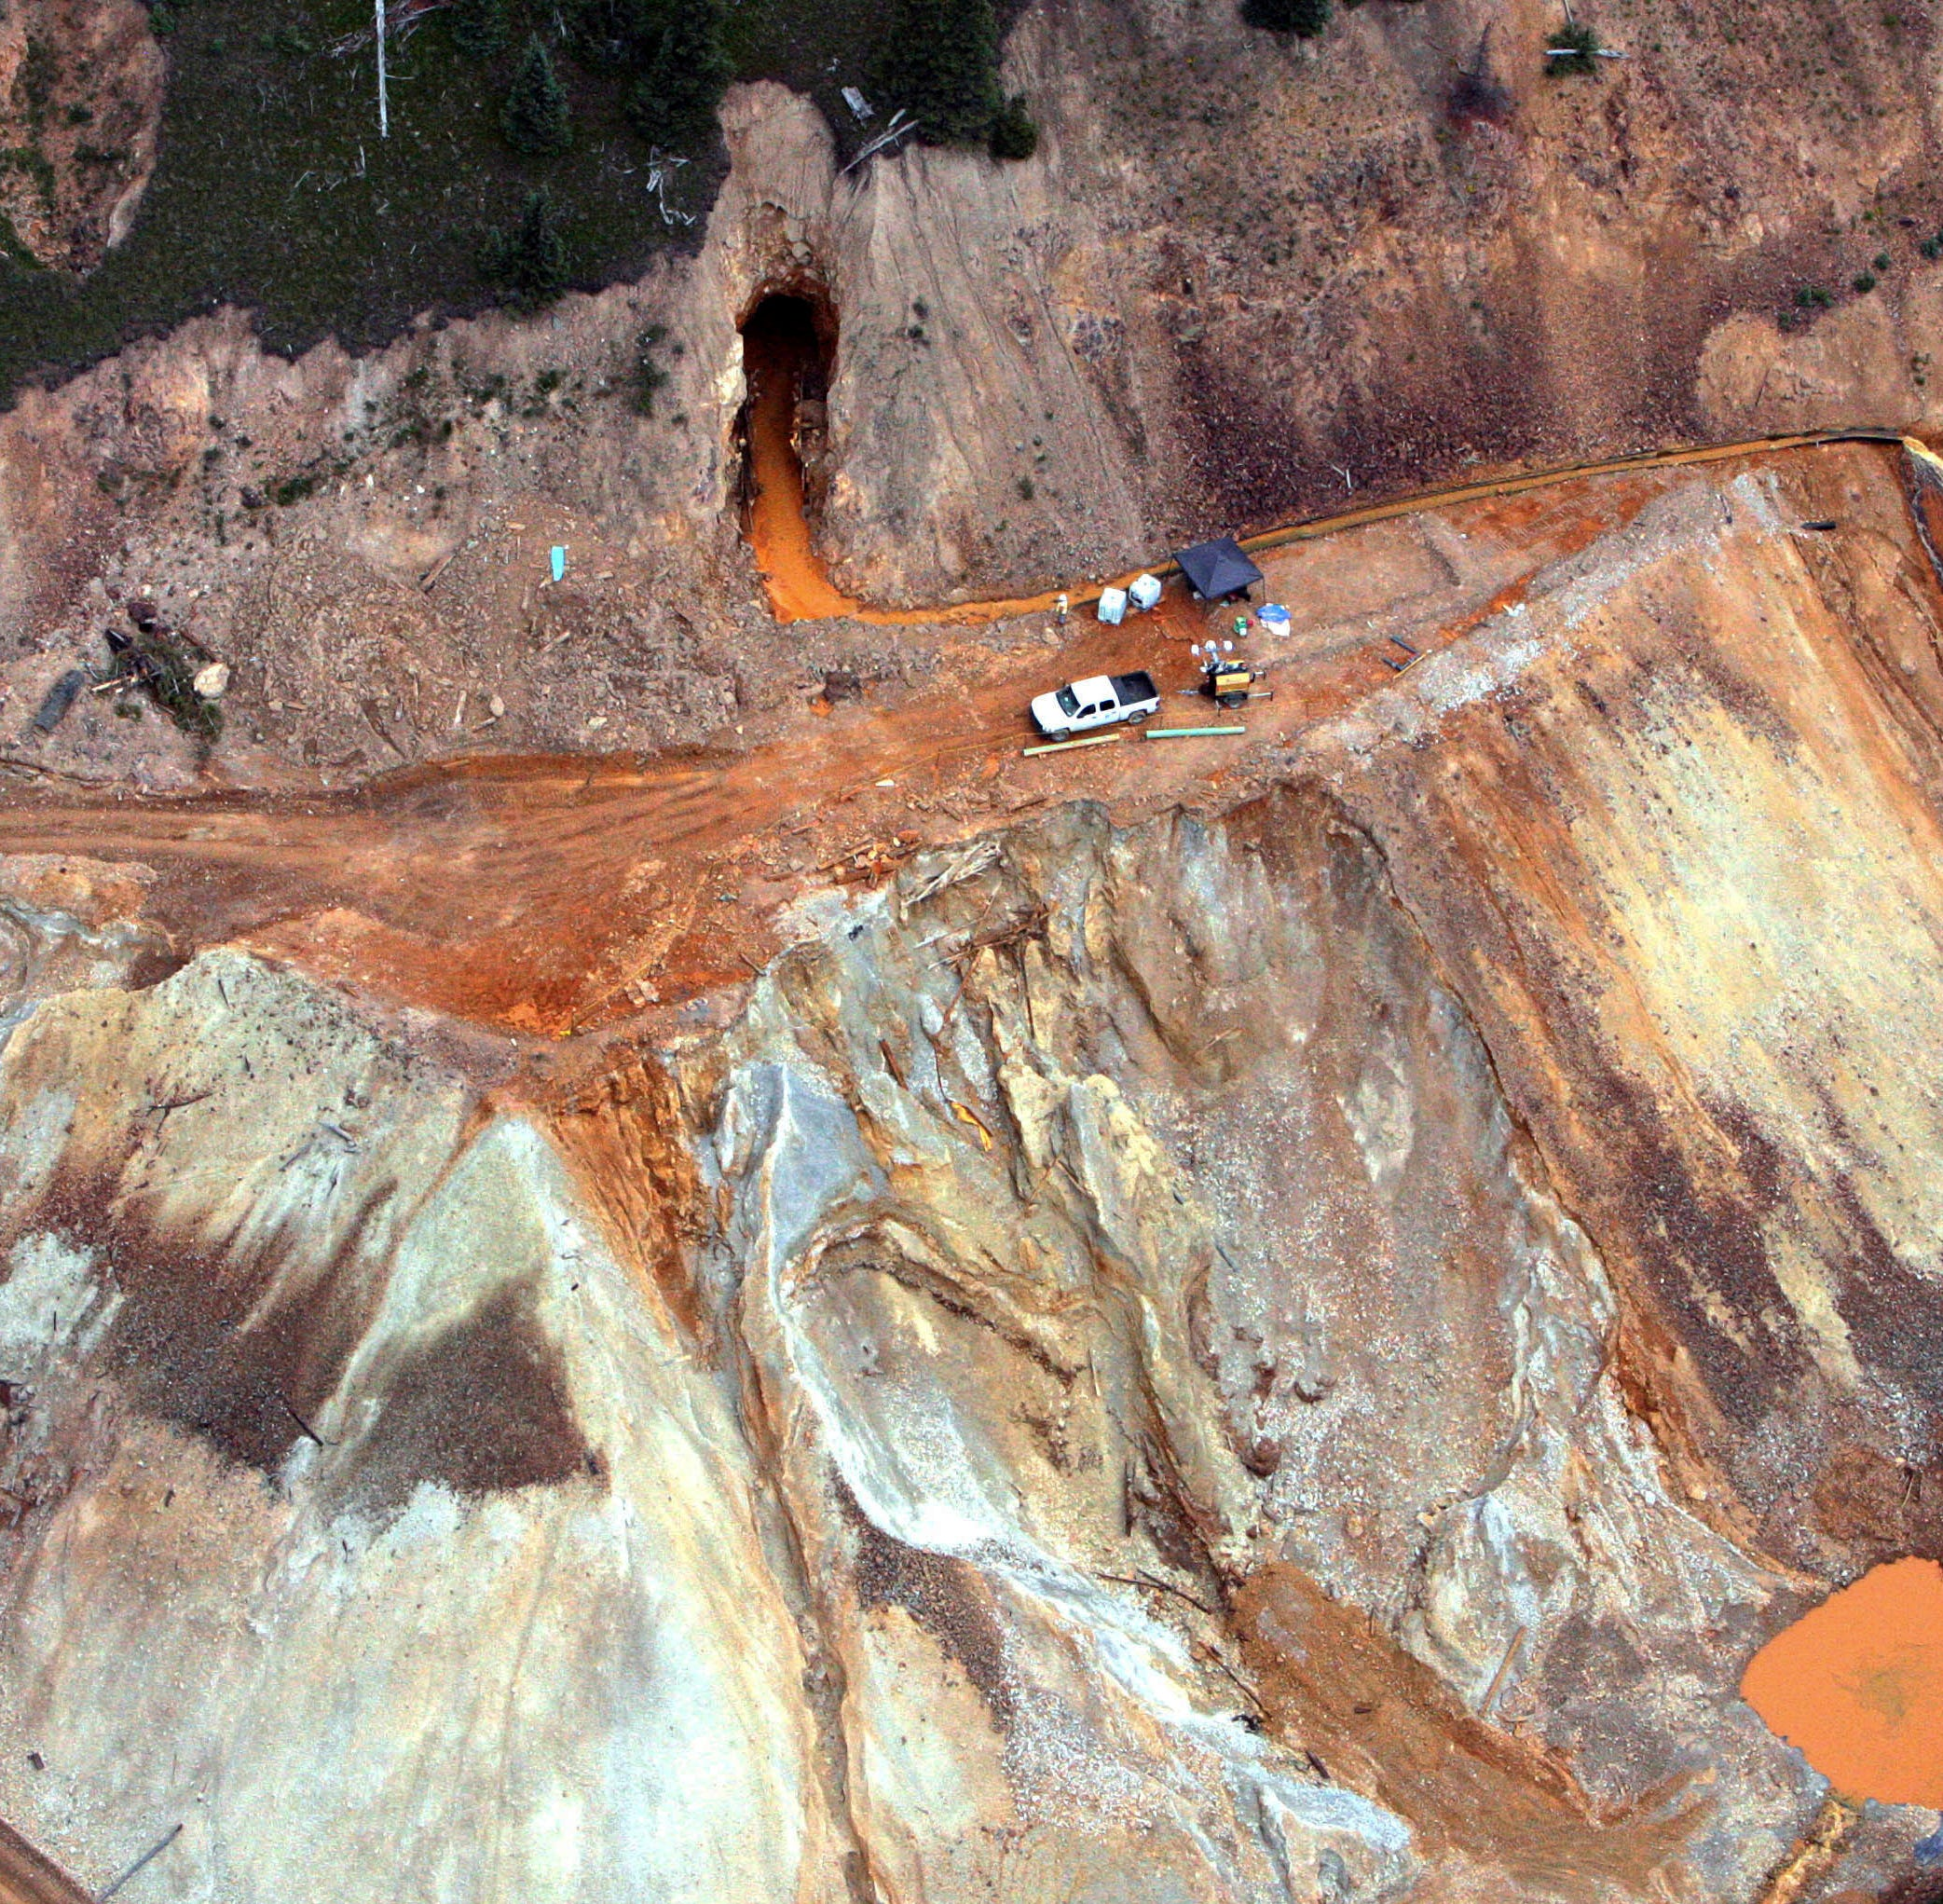 Polluting mines: 50M gallons of fouled wastewater daily